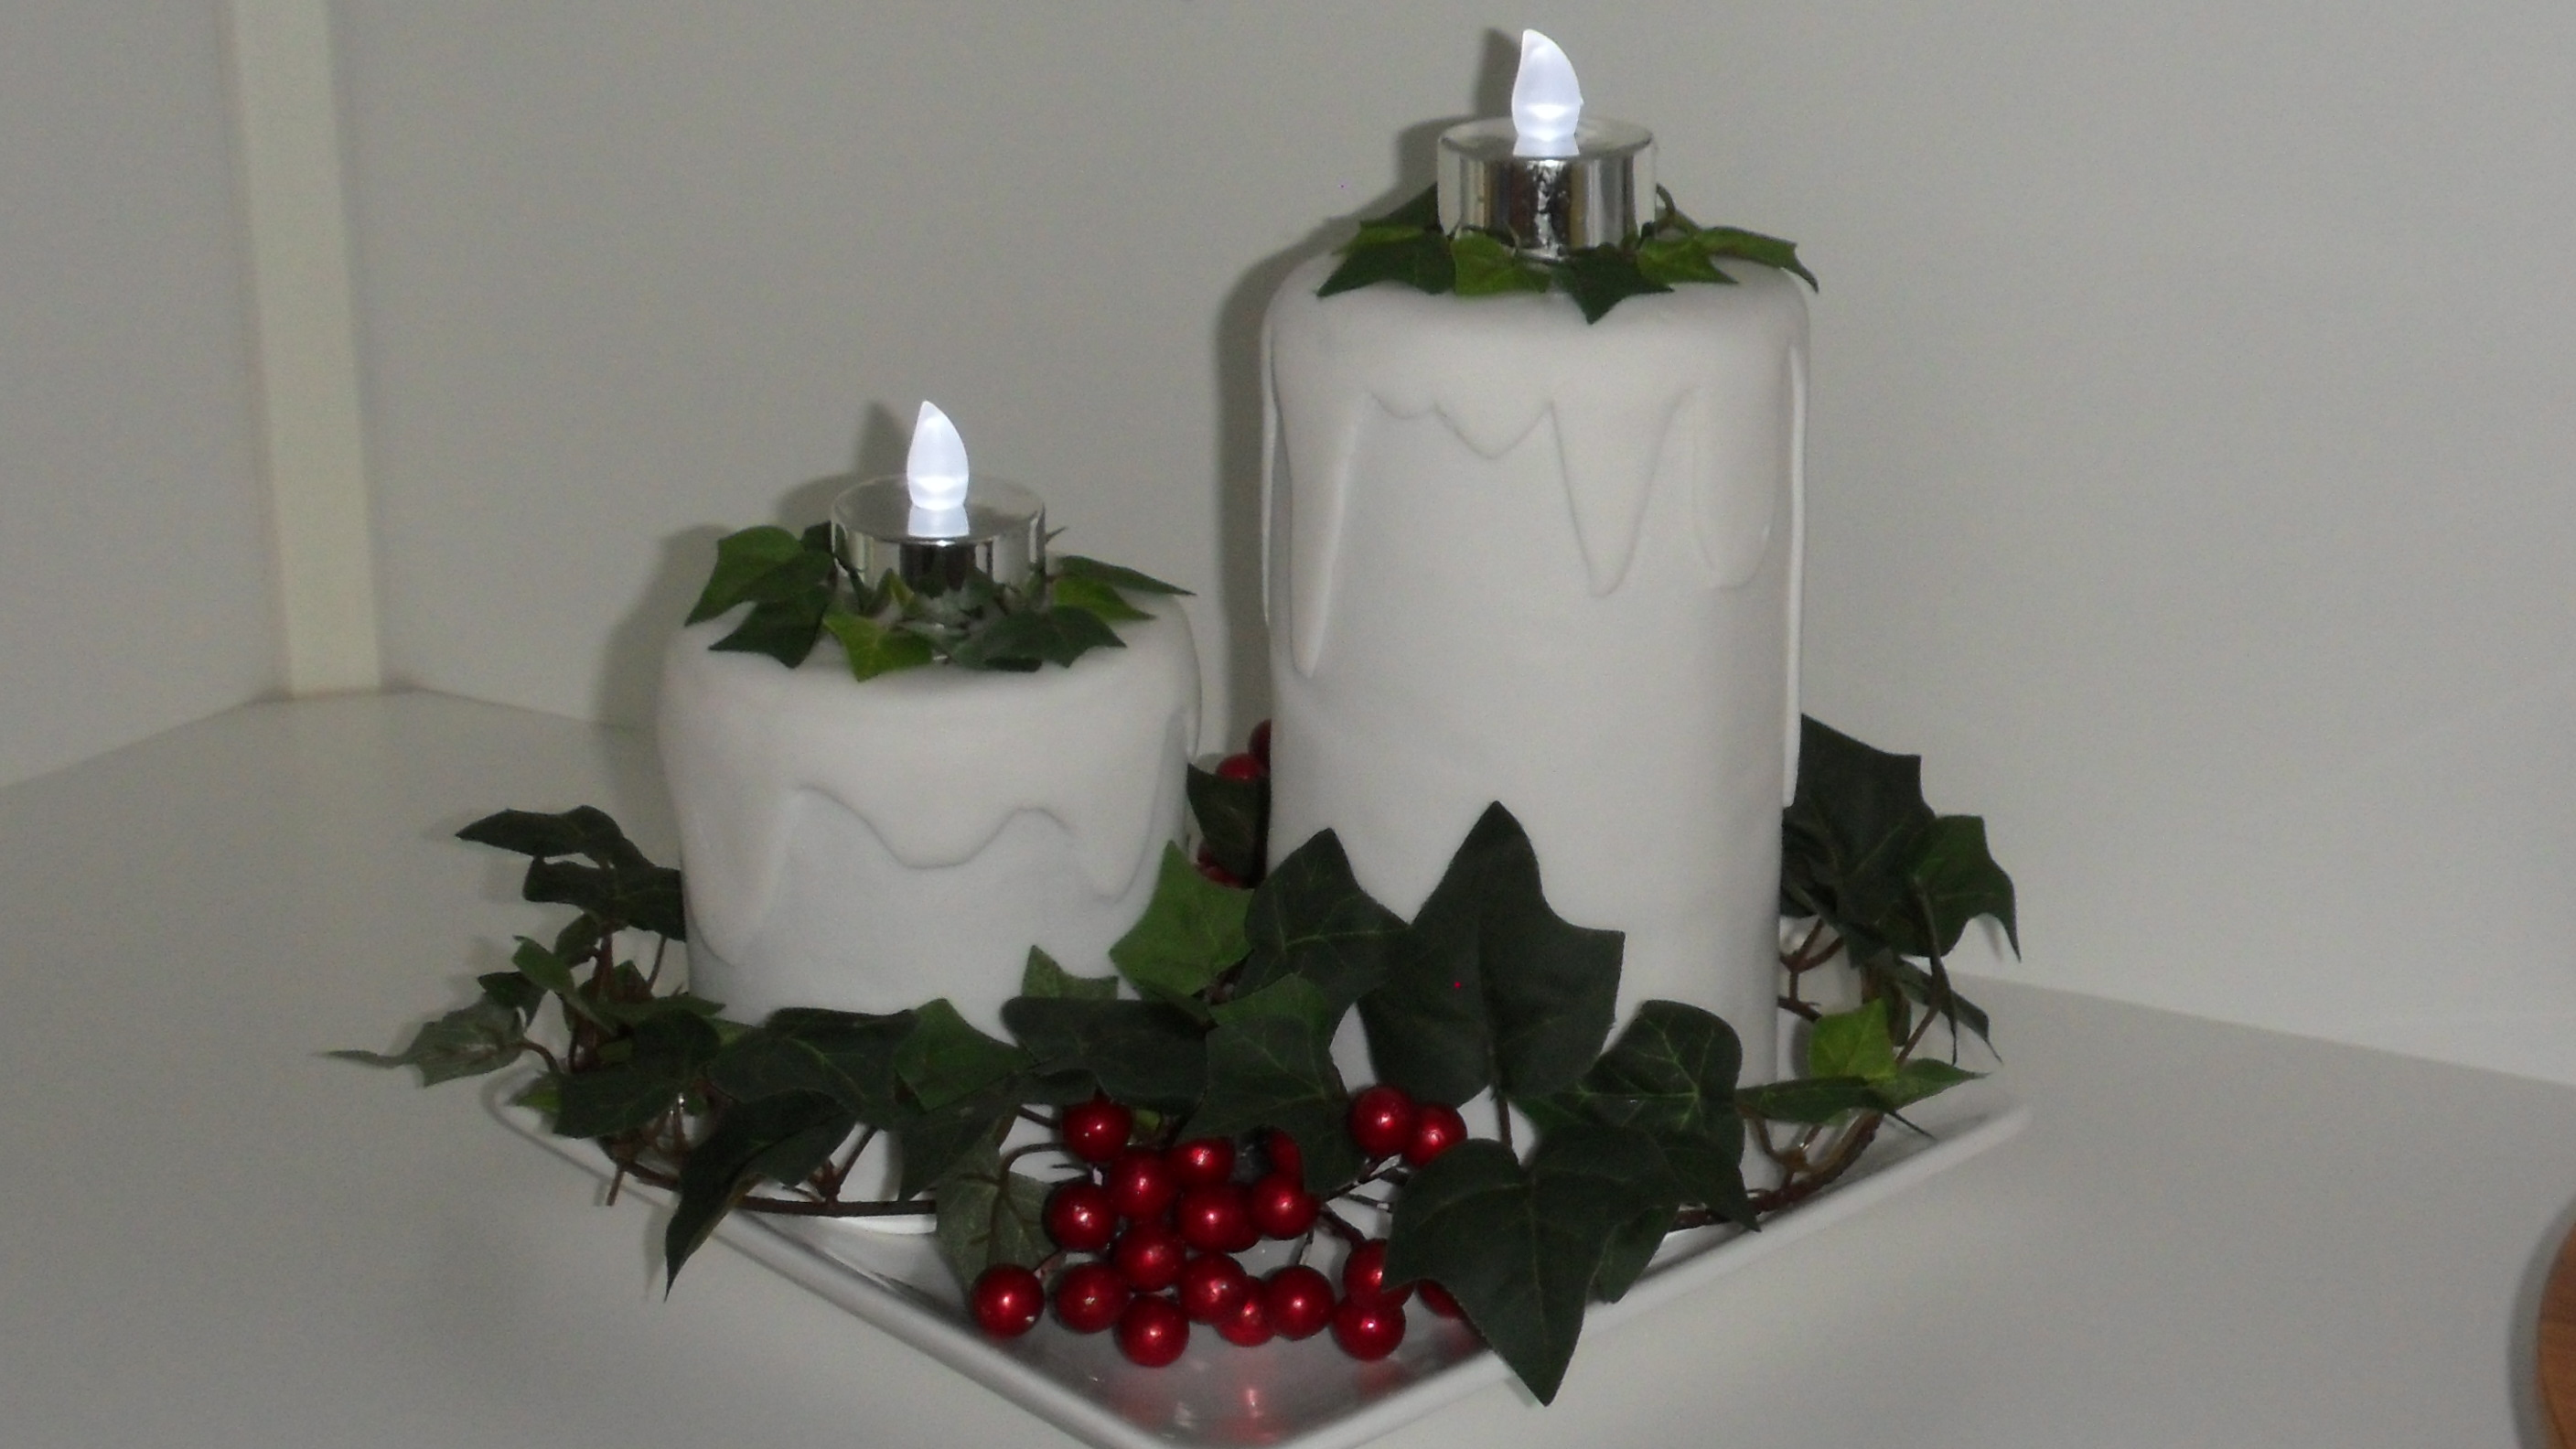 Cake Images With Candle : Christmas Cake Icing, Almond Paste Recipe, and Finished ...